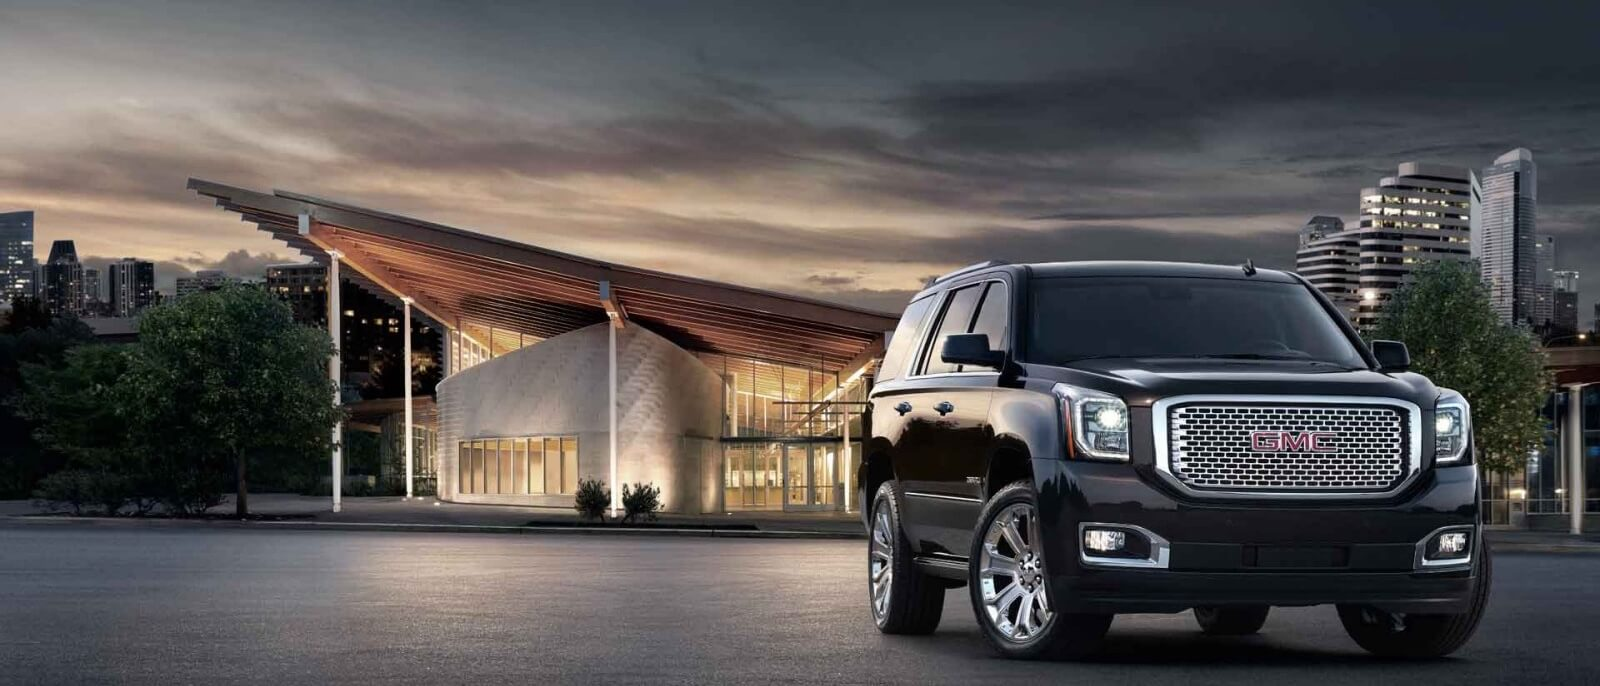 2017 GMC Yukon Denali dark exterior model